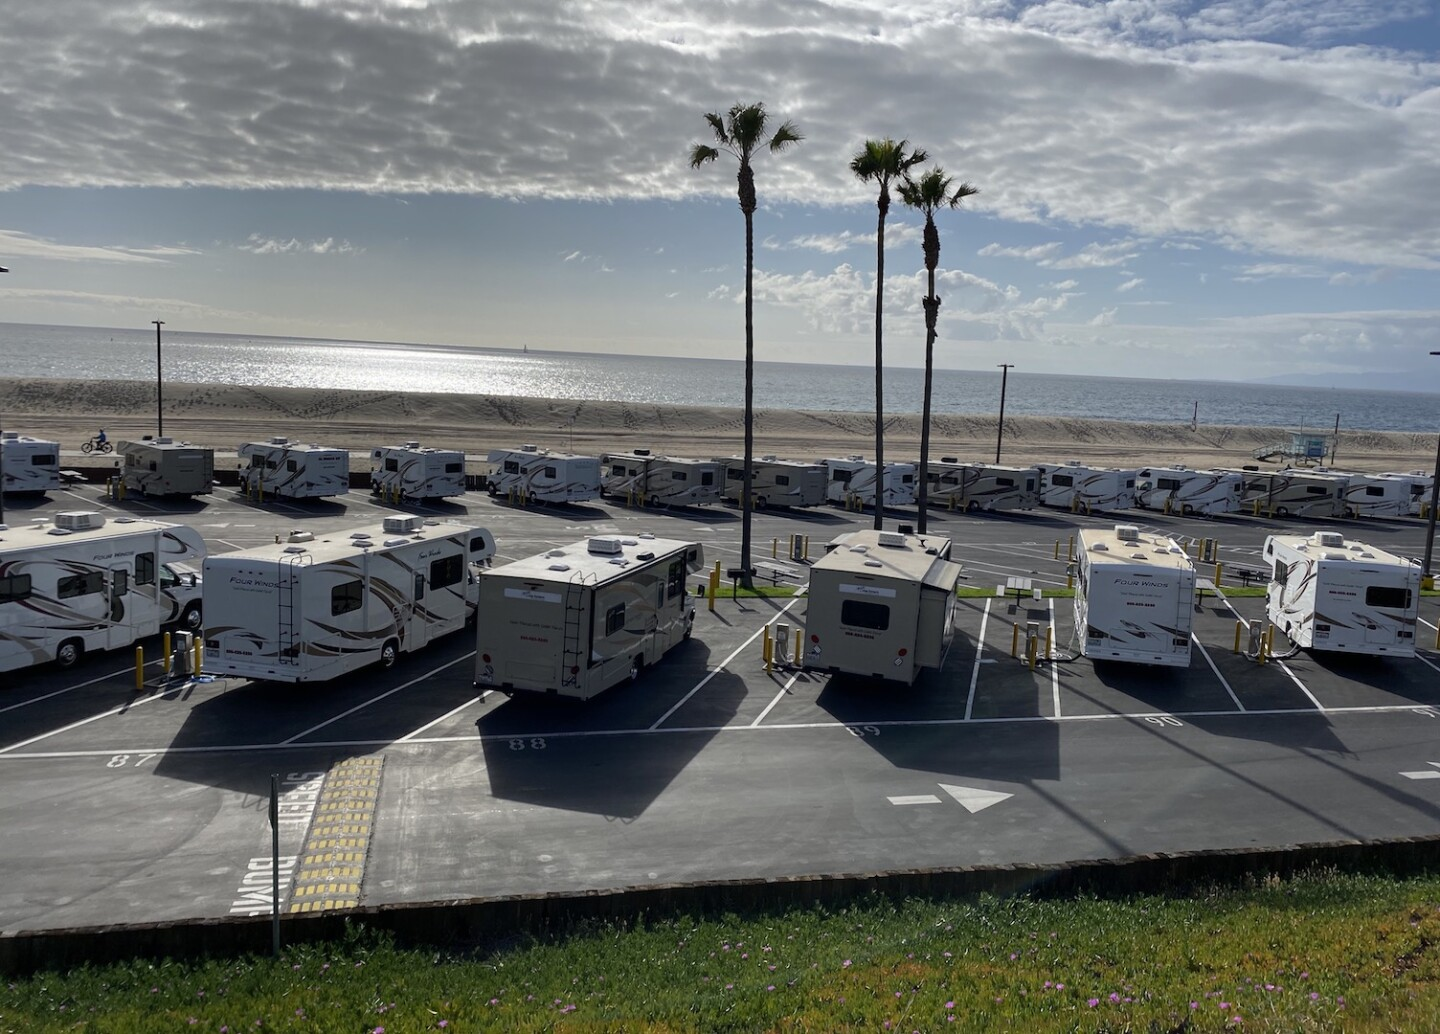 Trainers set up at the Dockweiler beach parking lot for quarantine | Photo taken by Karen Foshay